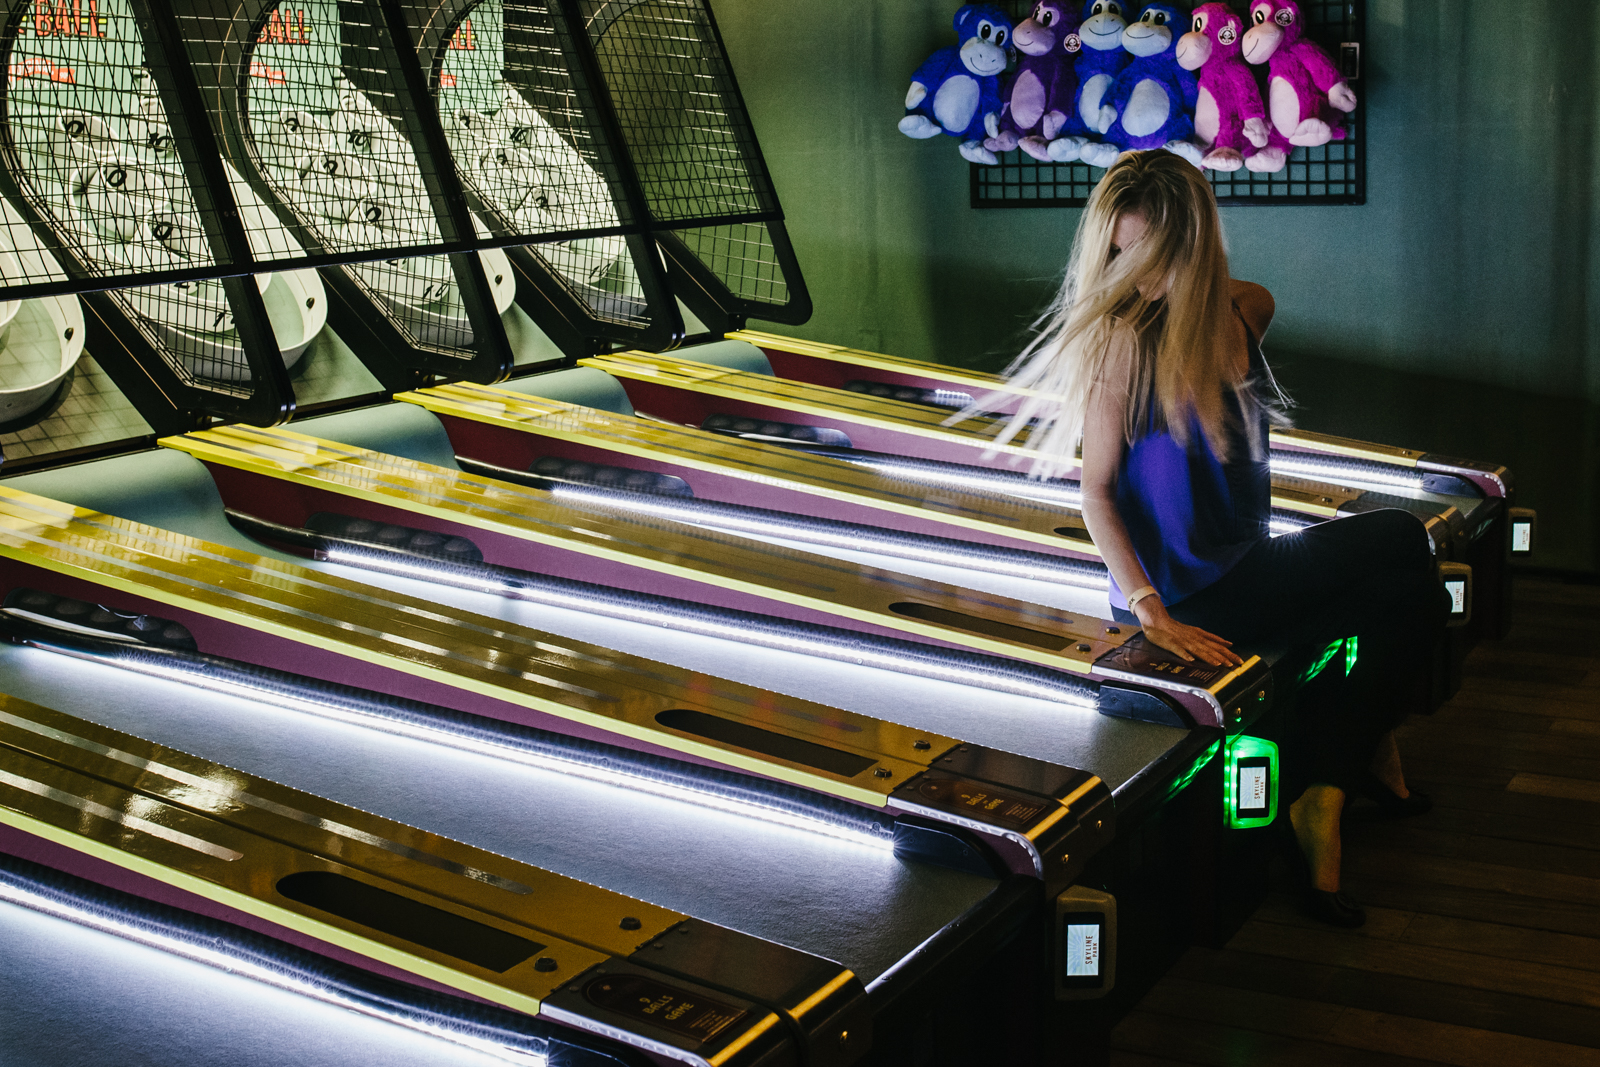 street photography image of woman on skeeball game at skyline park from atlanta clickin walk 2017